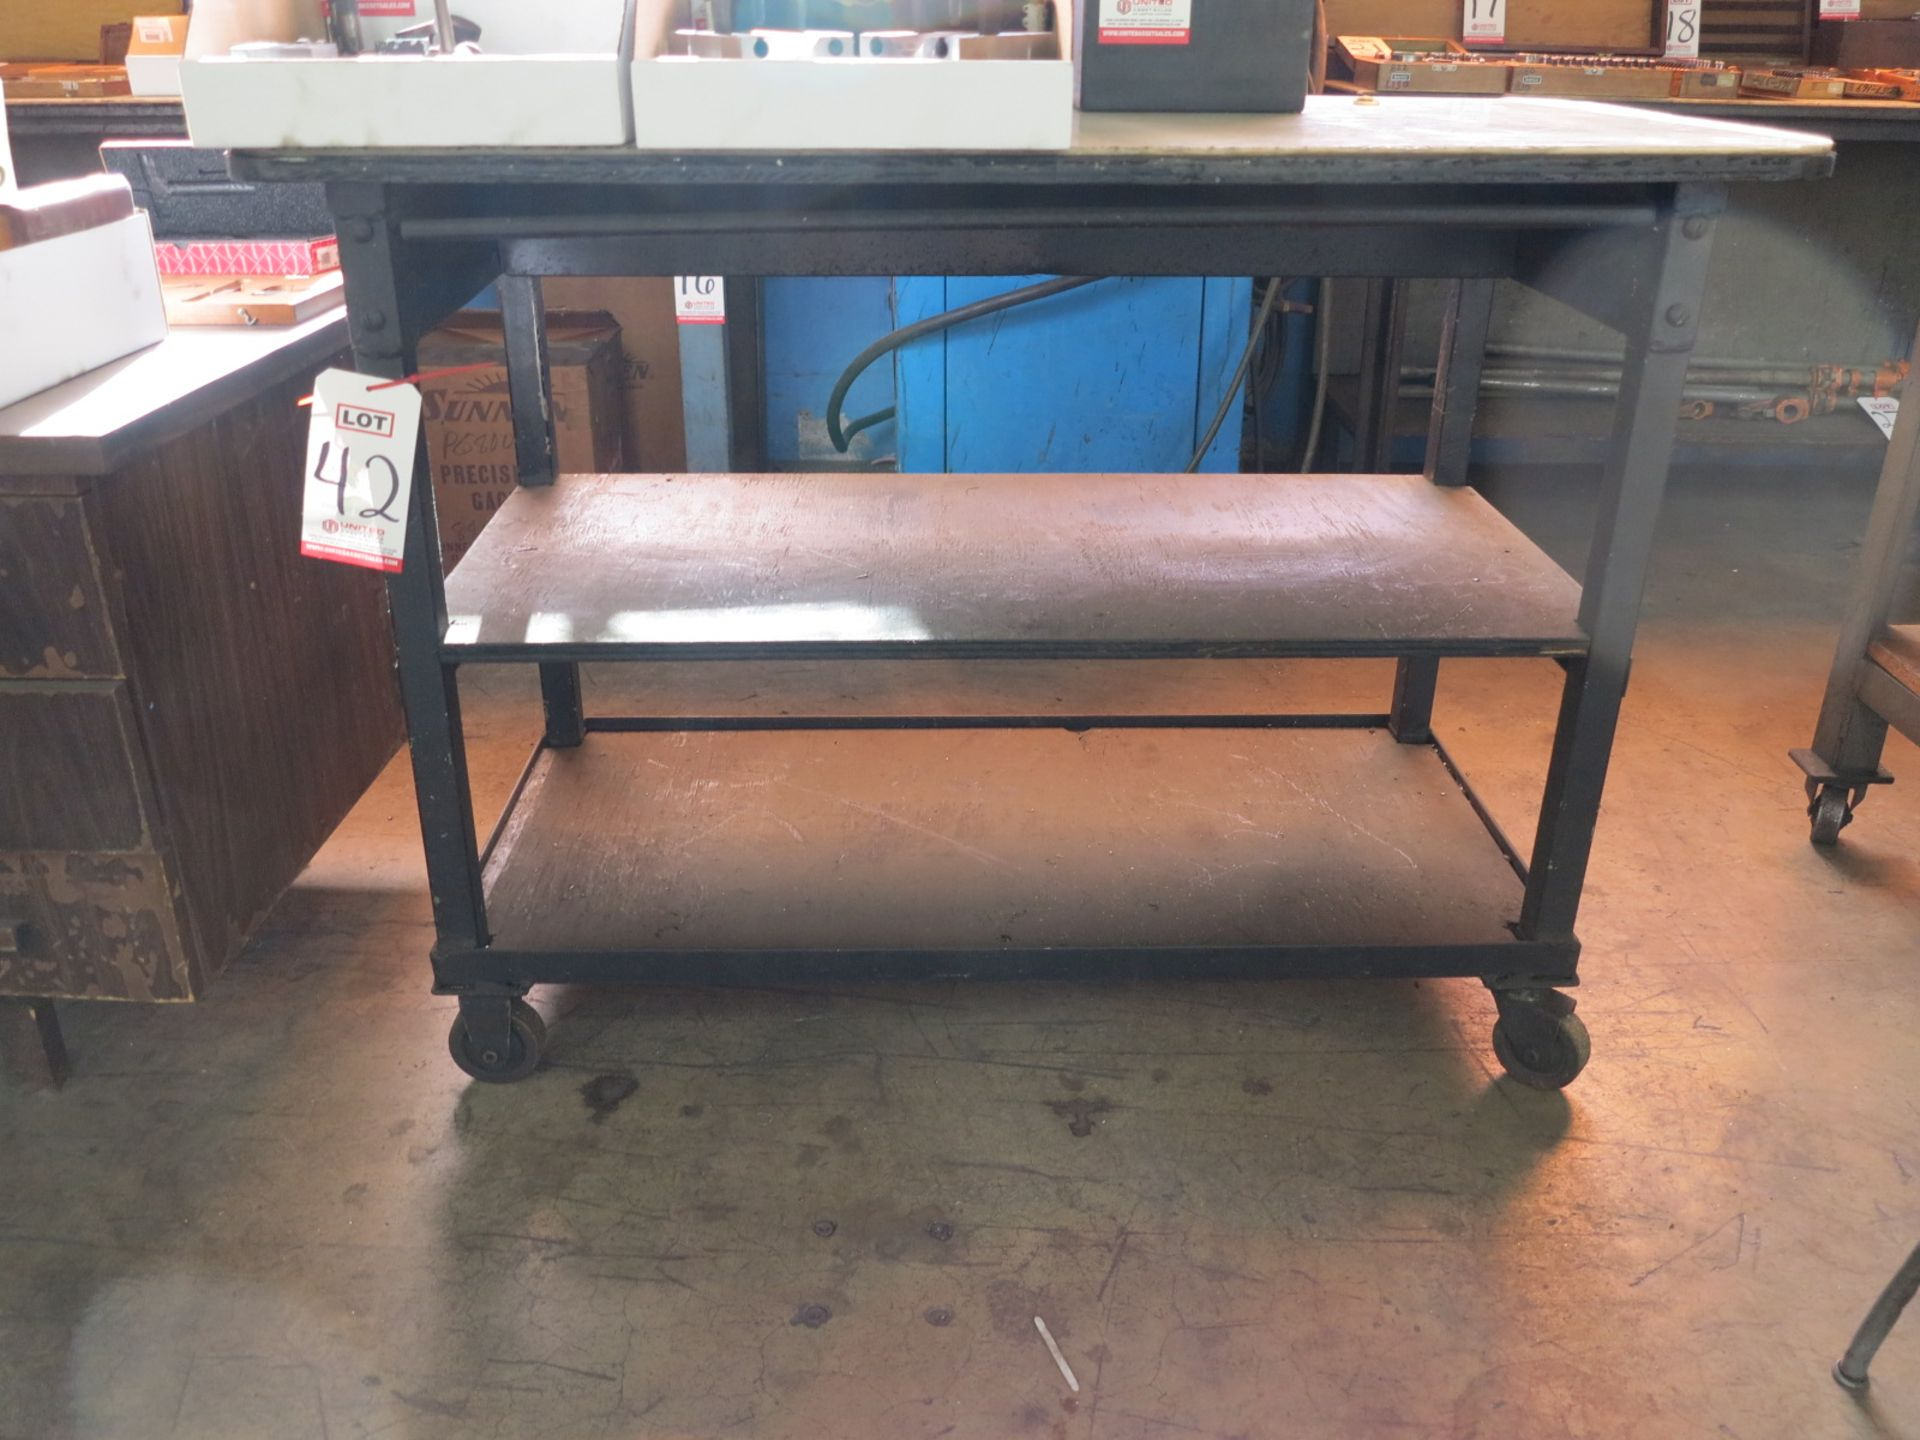 "Lot 42 - SHOP CART, 22"" X 48"", CONTENTS NOT INCLUDED"